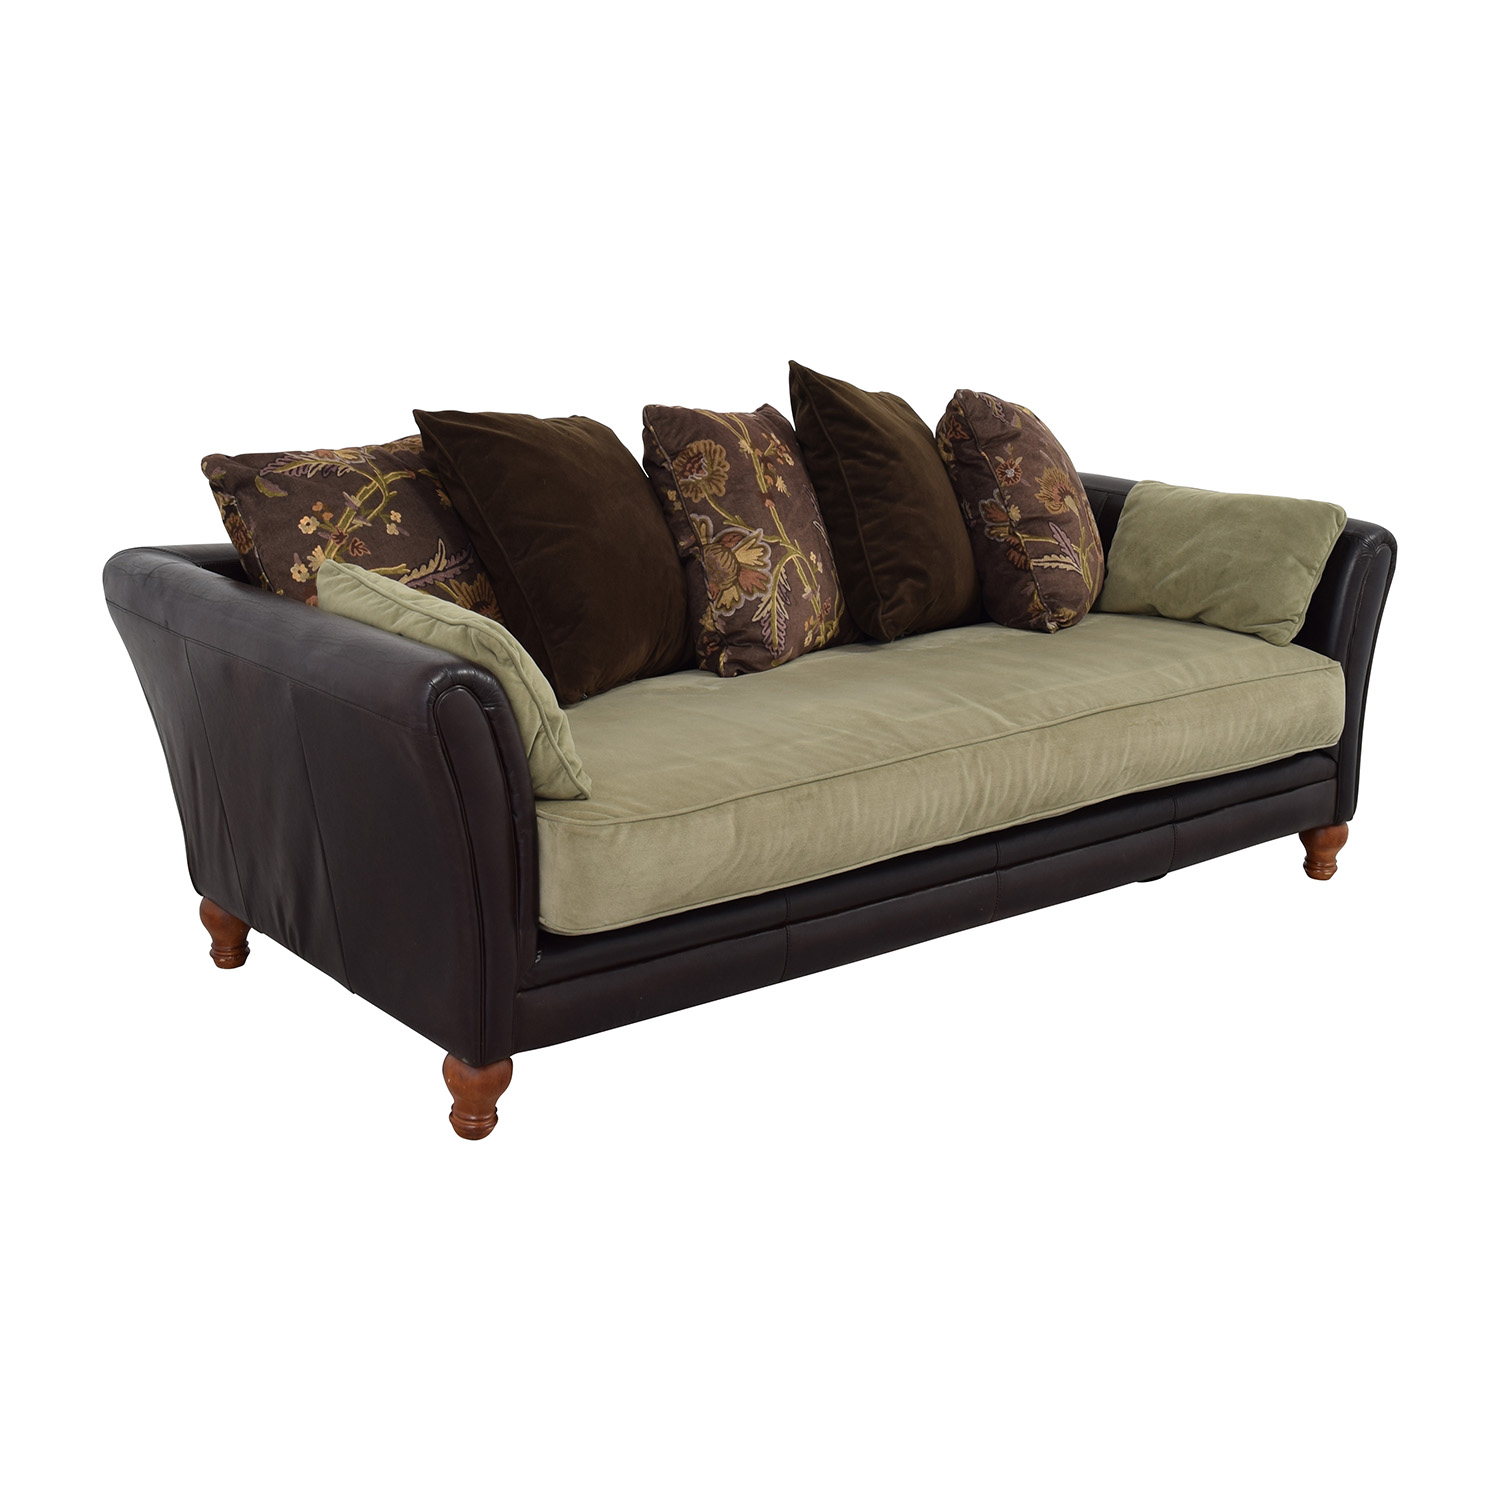 90 off leather and suede three seat sofa sofas. Black Bedroom Furniture Sets. Home Design Ideas